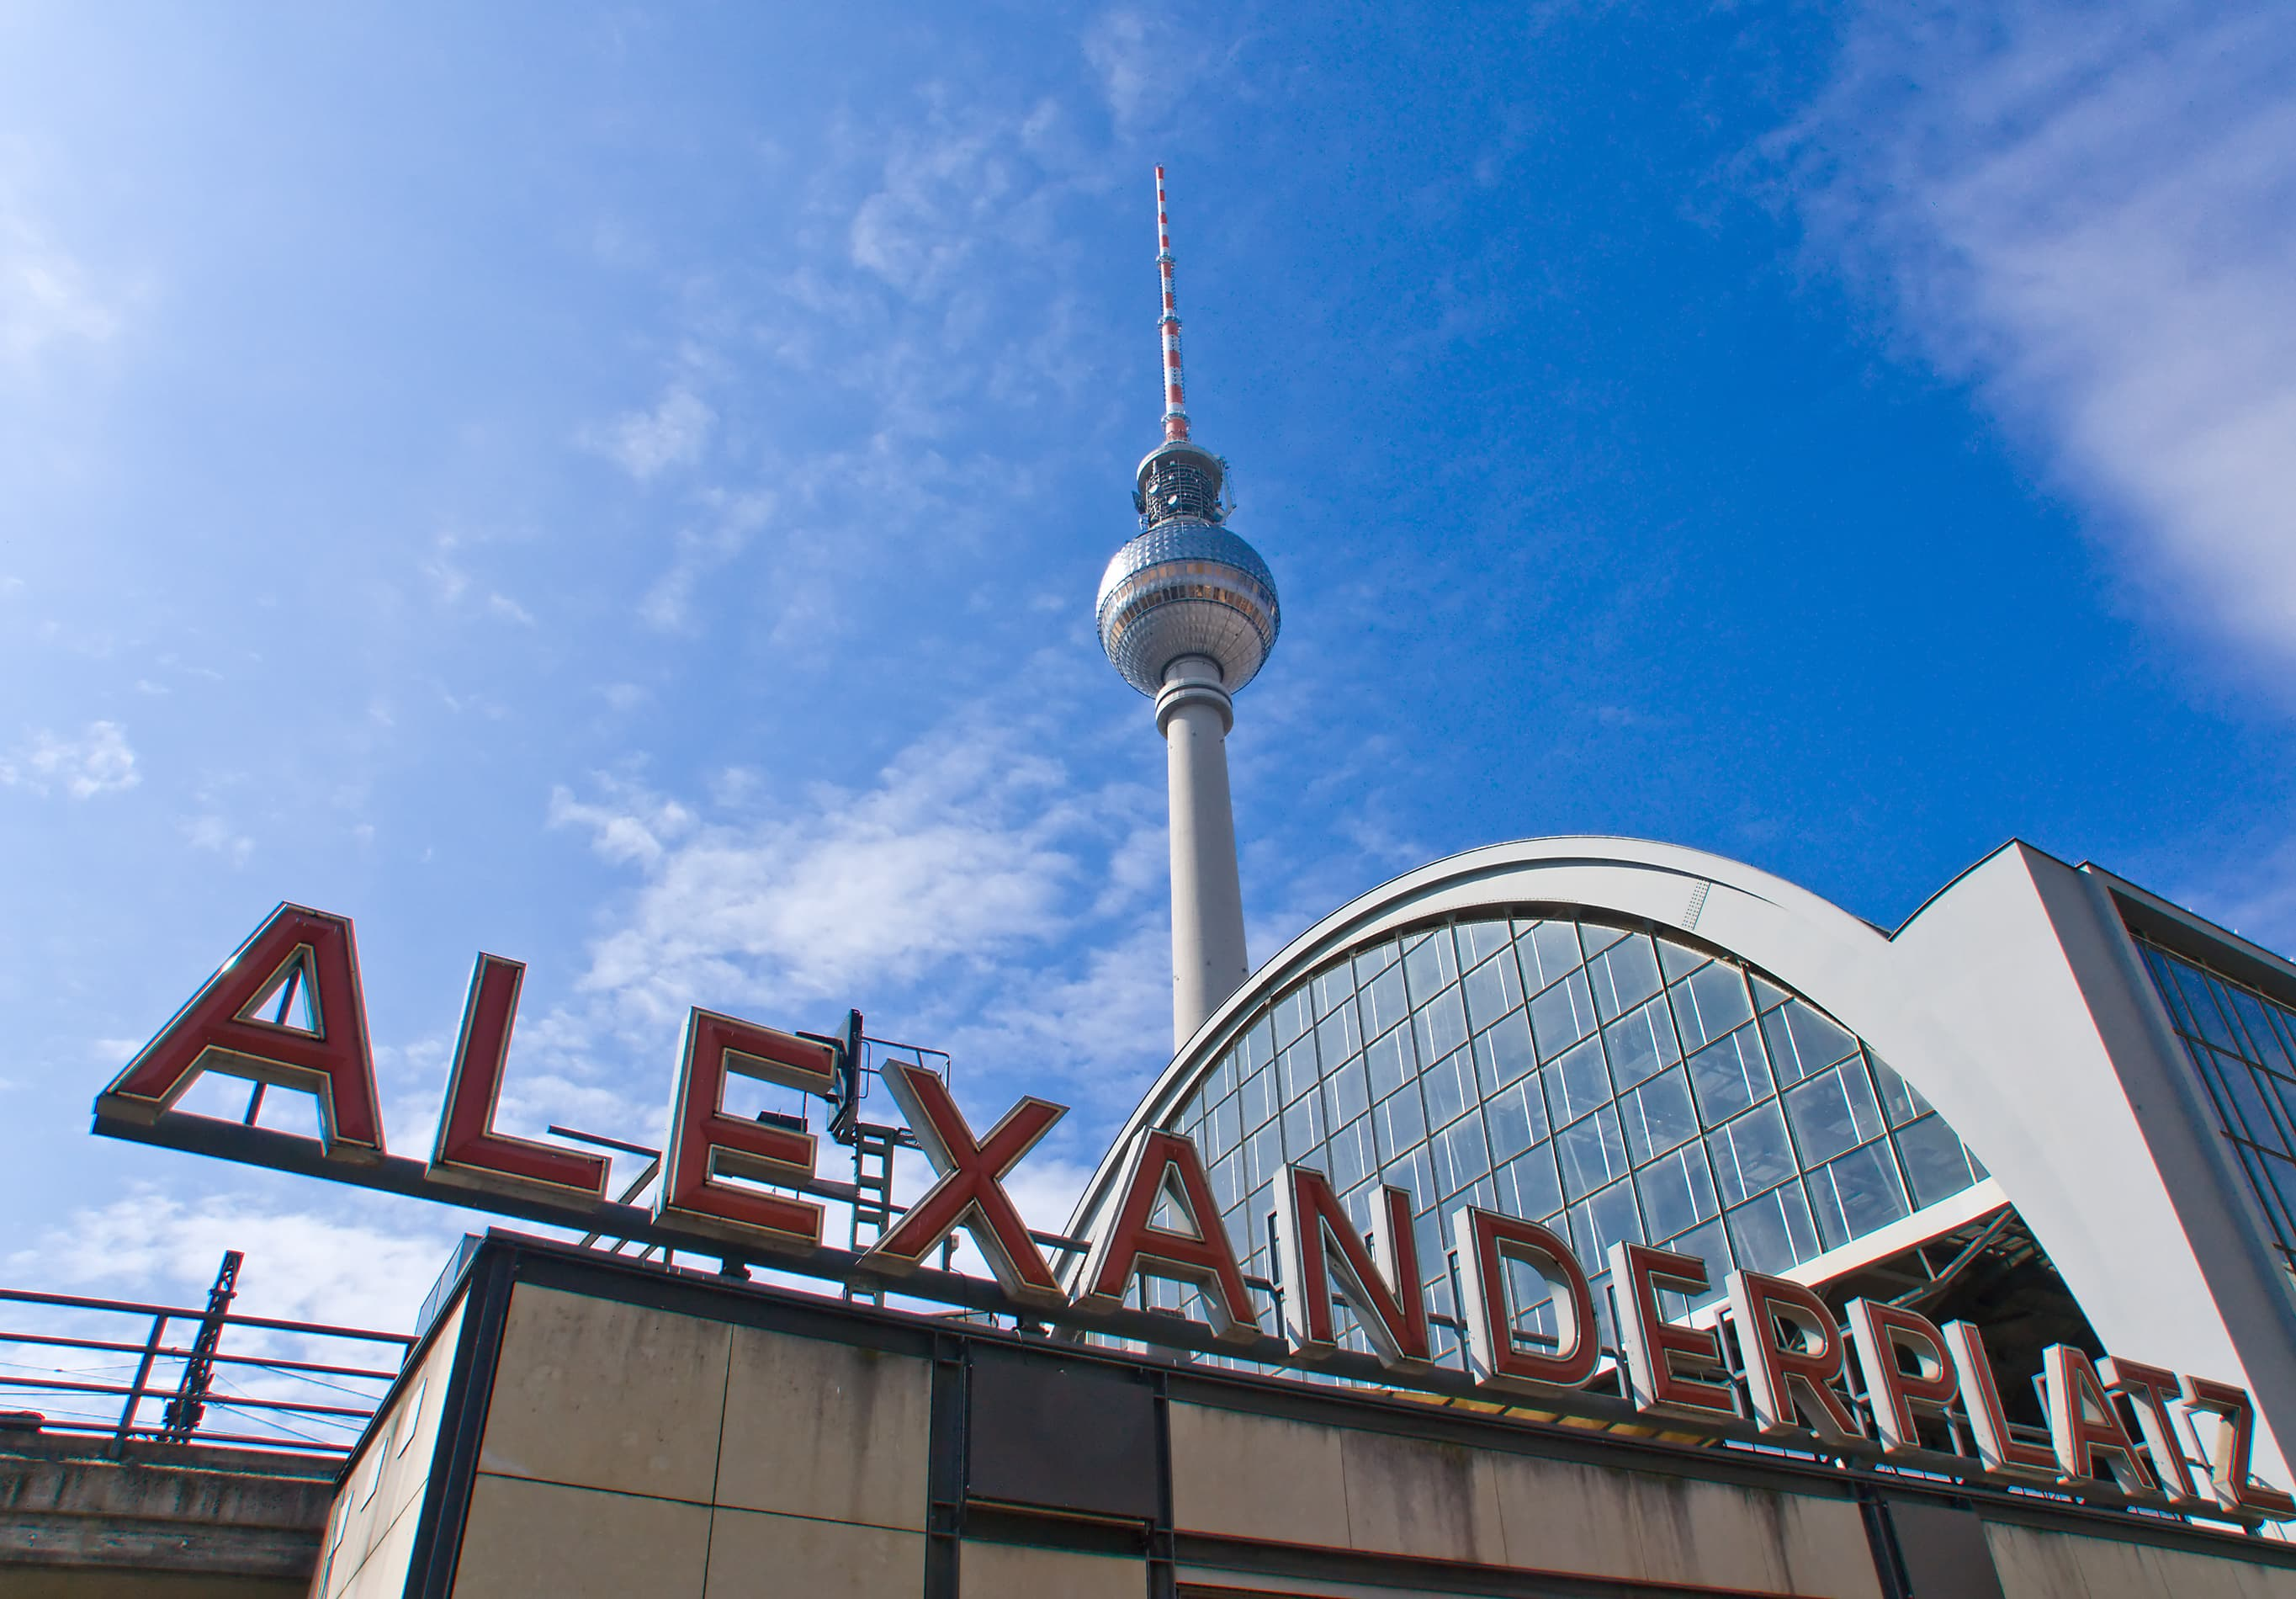 Hotel i berlin stor guide til billige hoteller i berlin for Alexanderplatz hotel